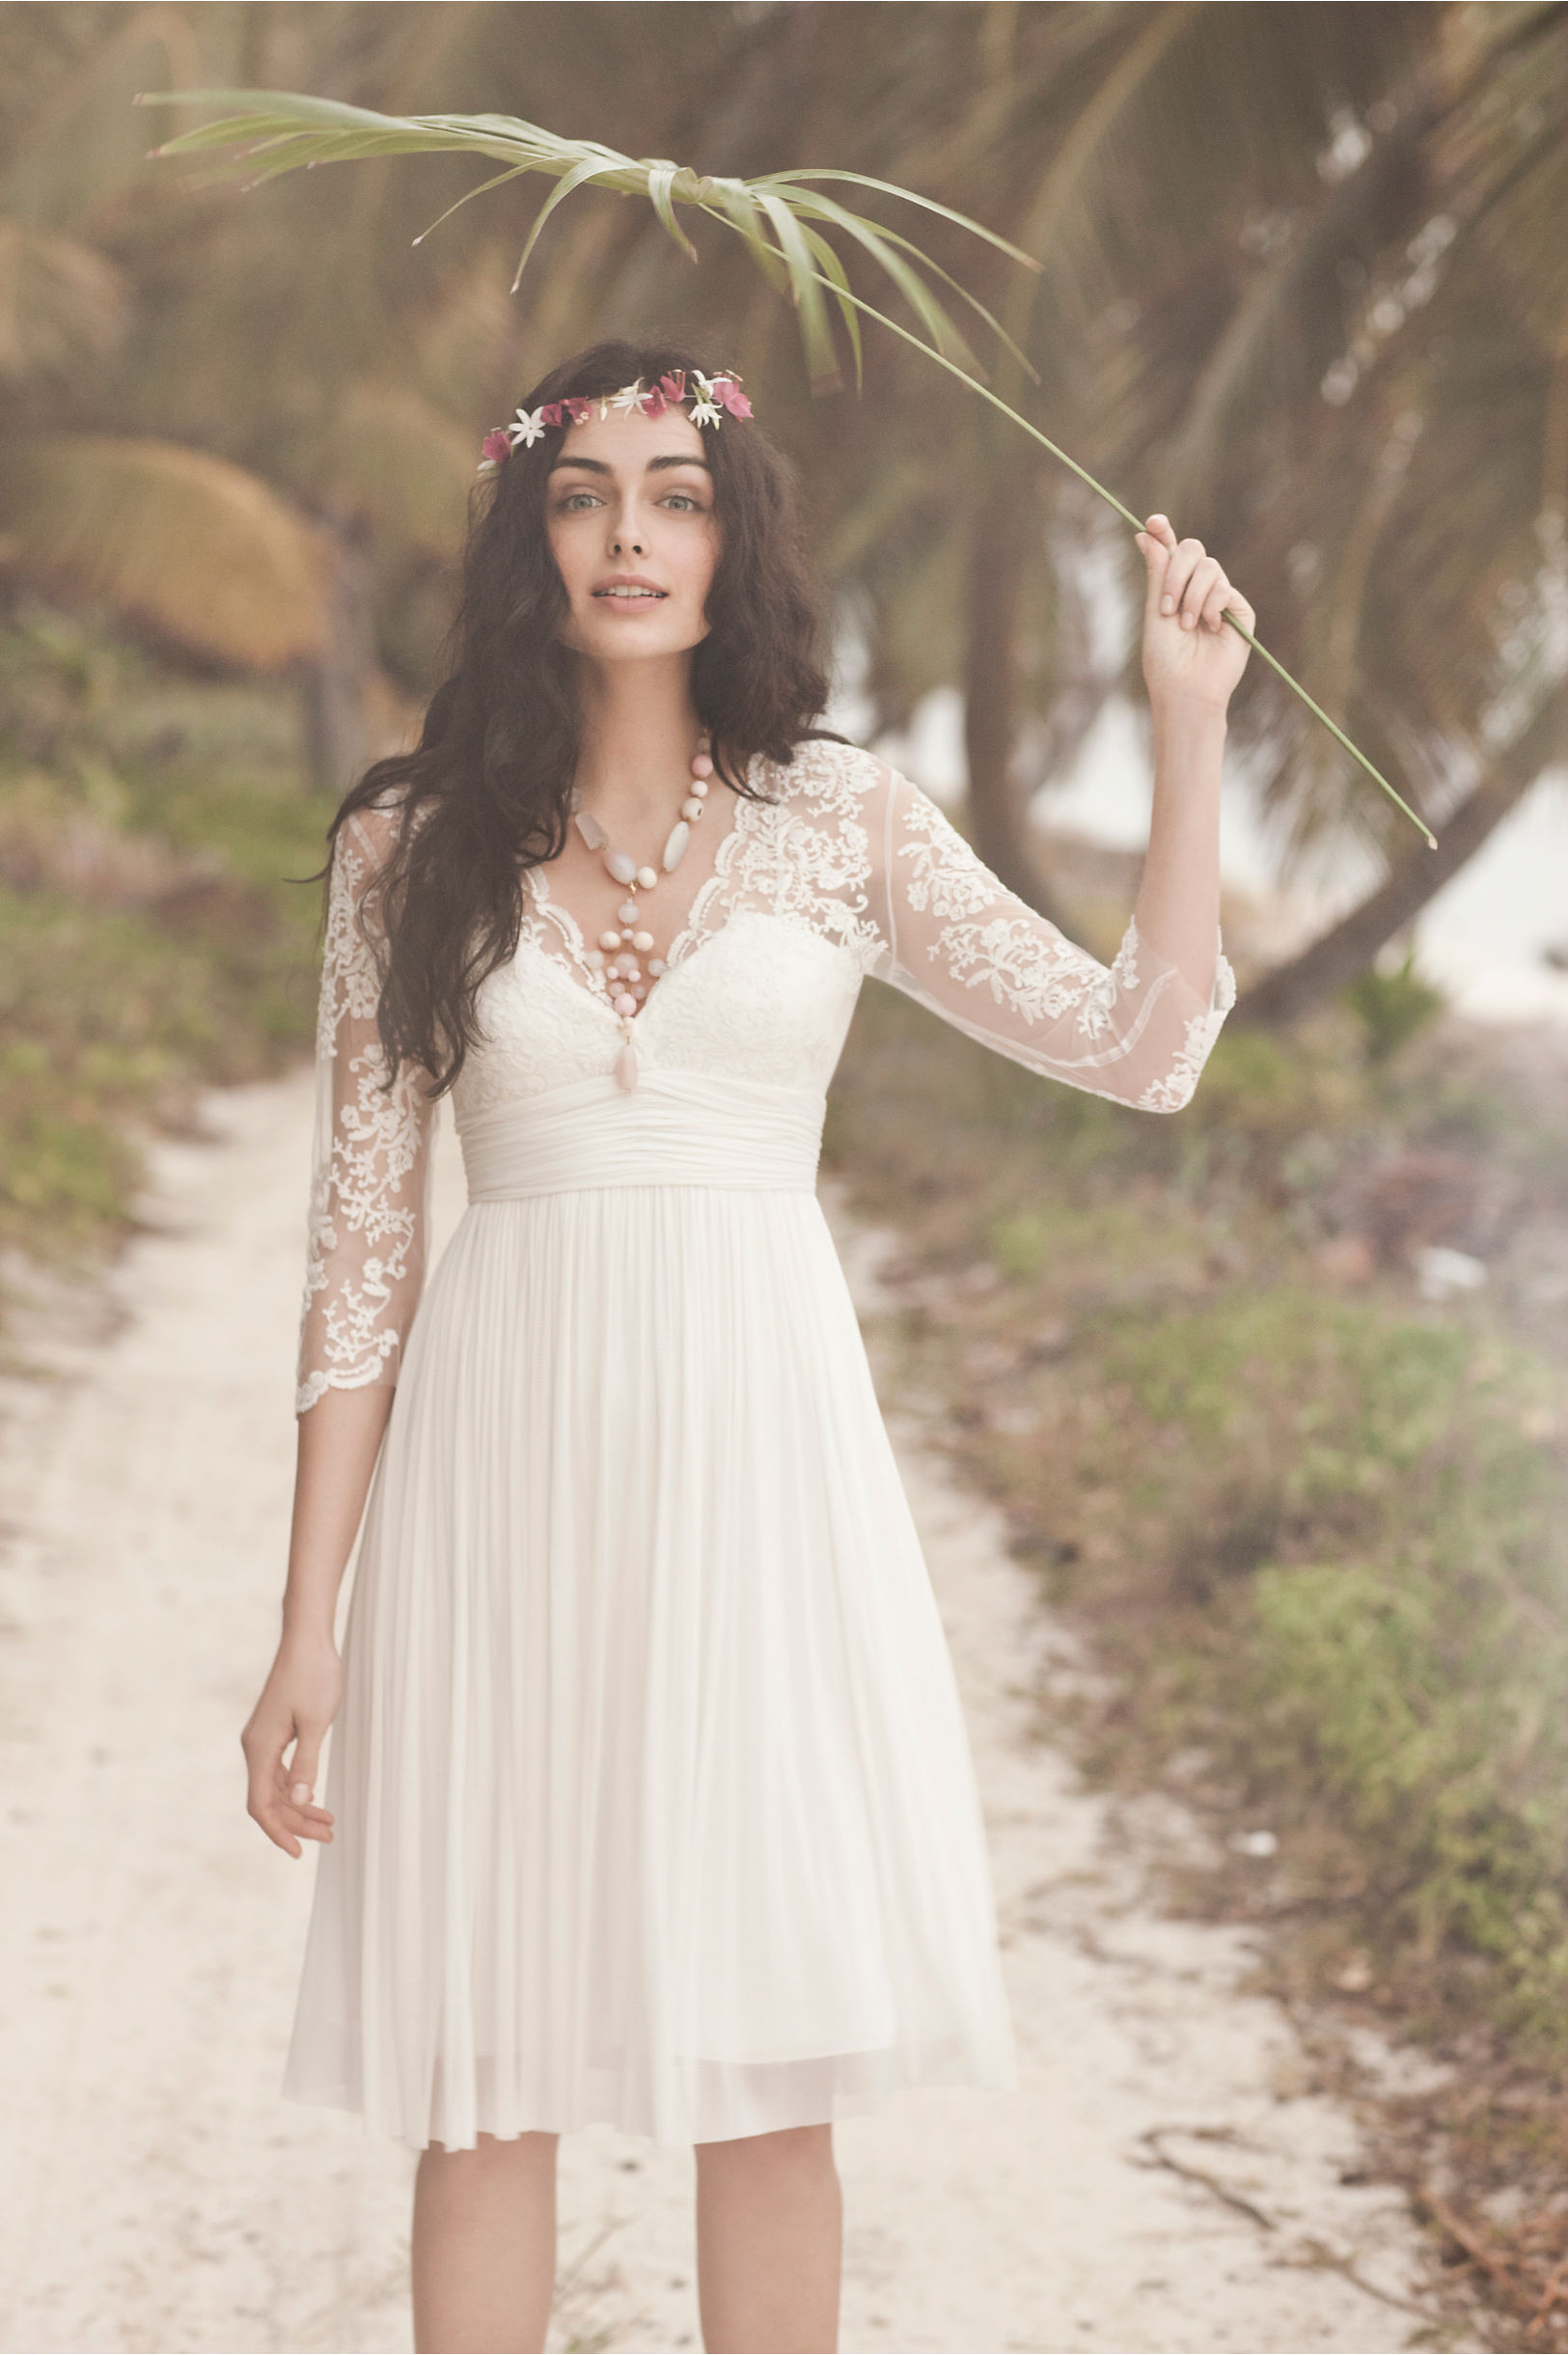 omari dress short beach wedding dress Catherine Deane ivory Omari Dress BHLDN